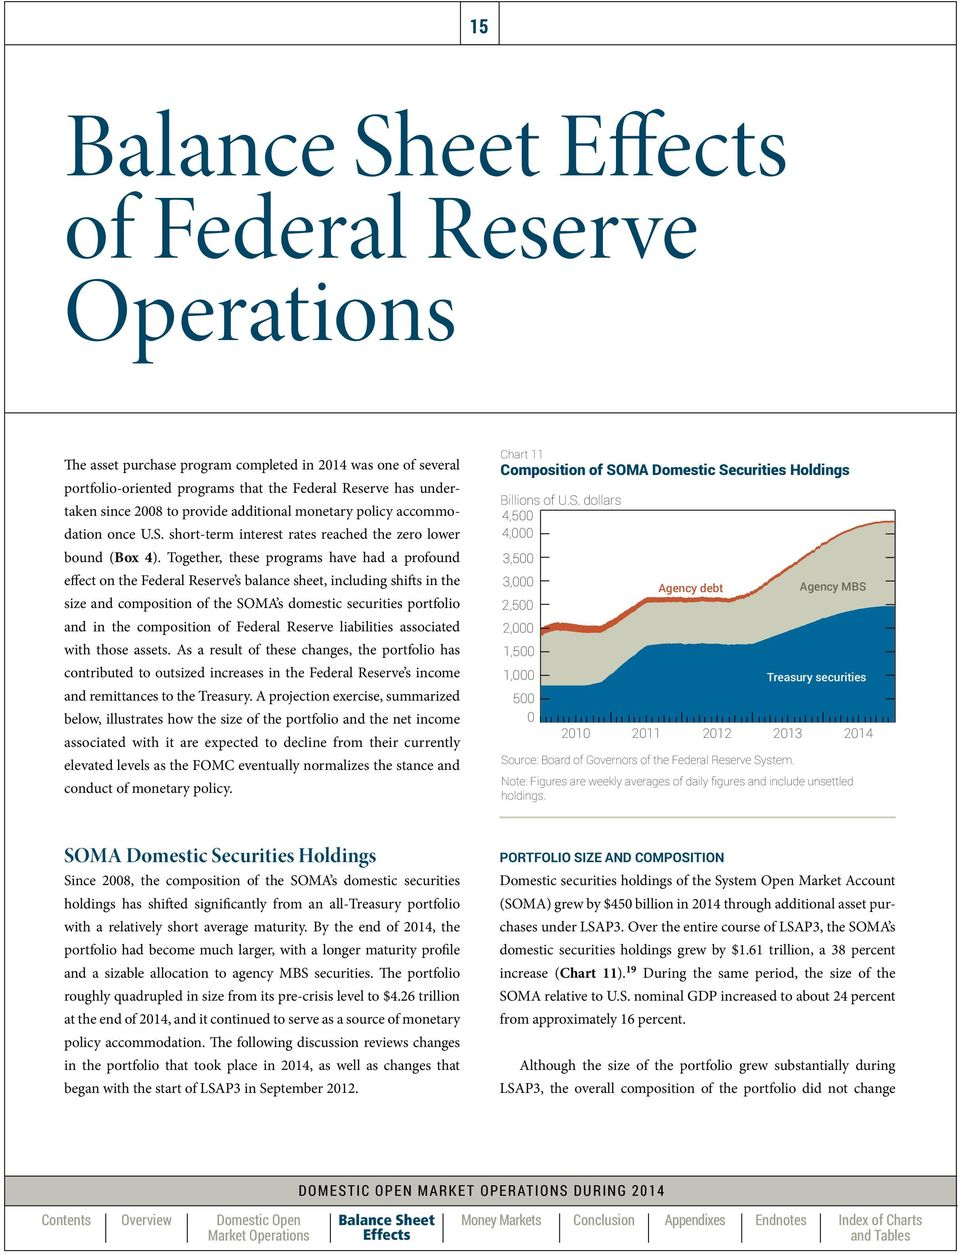 Together, these programs have had a profound effect on the Federal Reserve s balance sheet, including shifts in the size and composition of the SOMA s domestic securities portfolio and in the